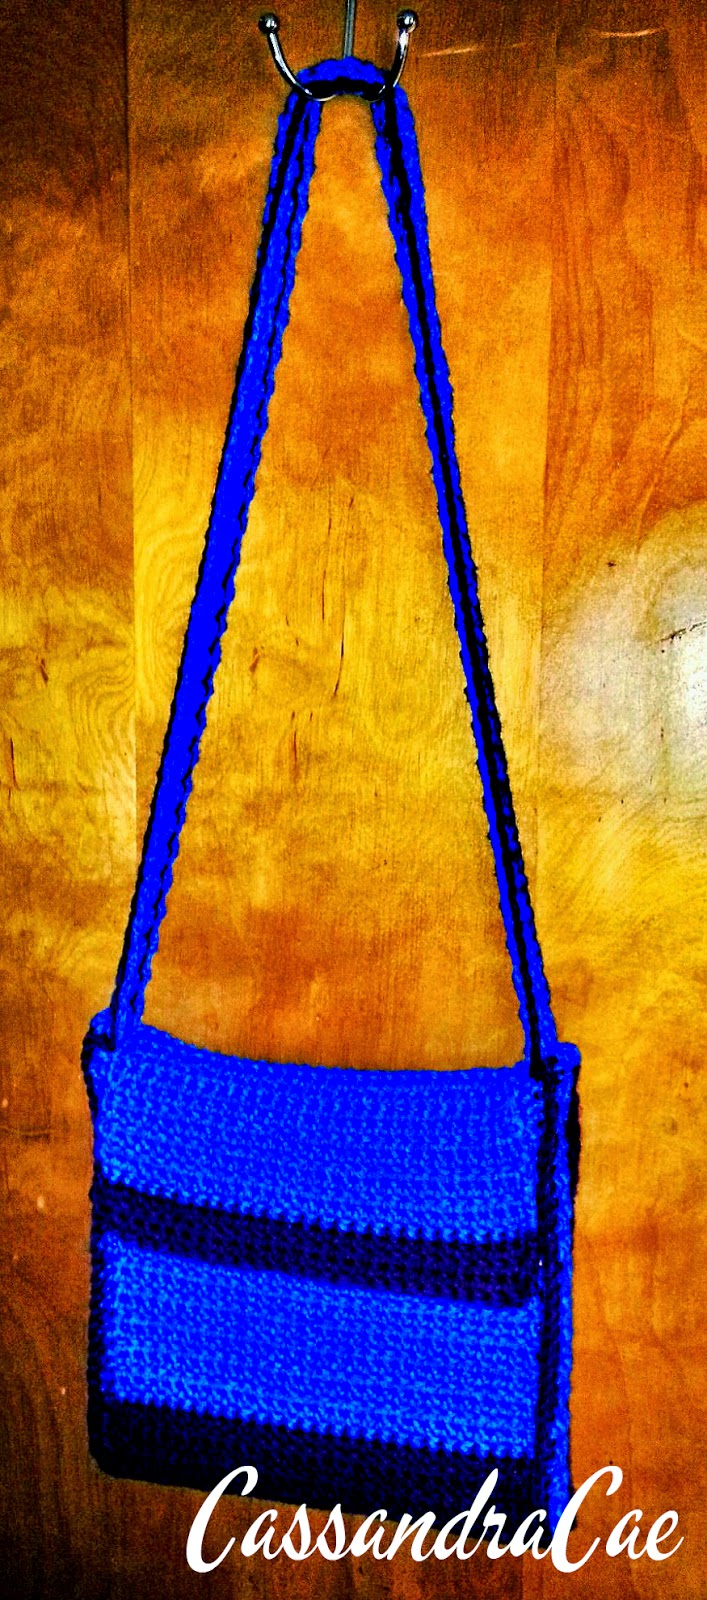 Homemade Crocheted Messenger Bag